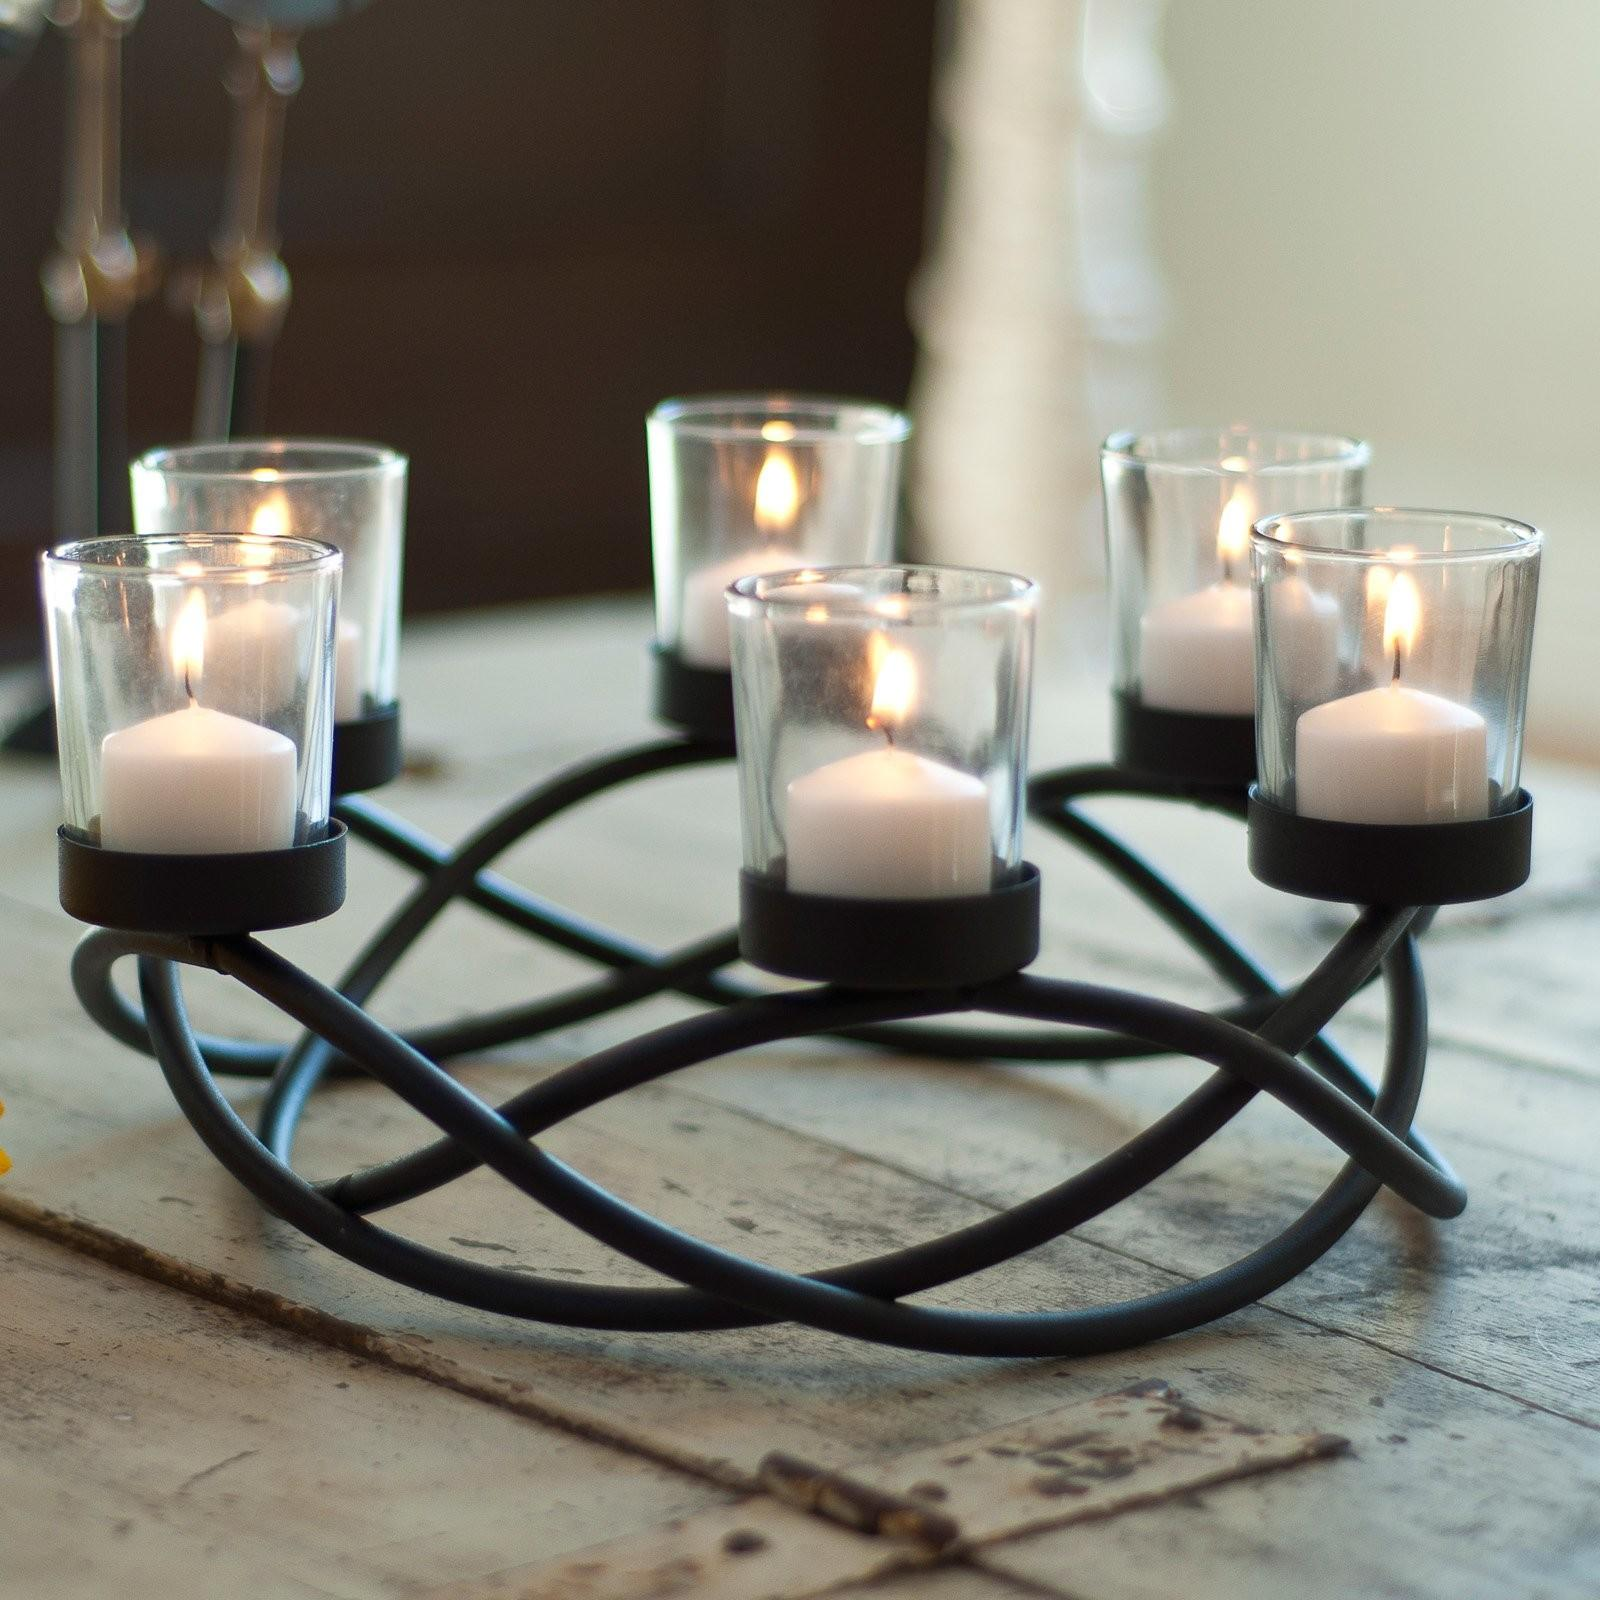 Danya Round Waves Candleholder Candle Holders